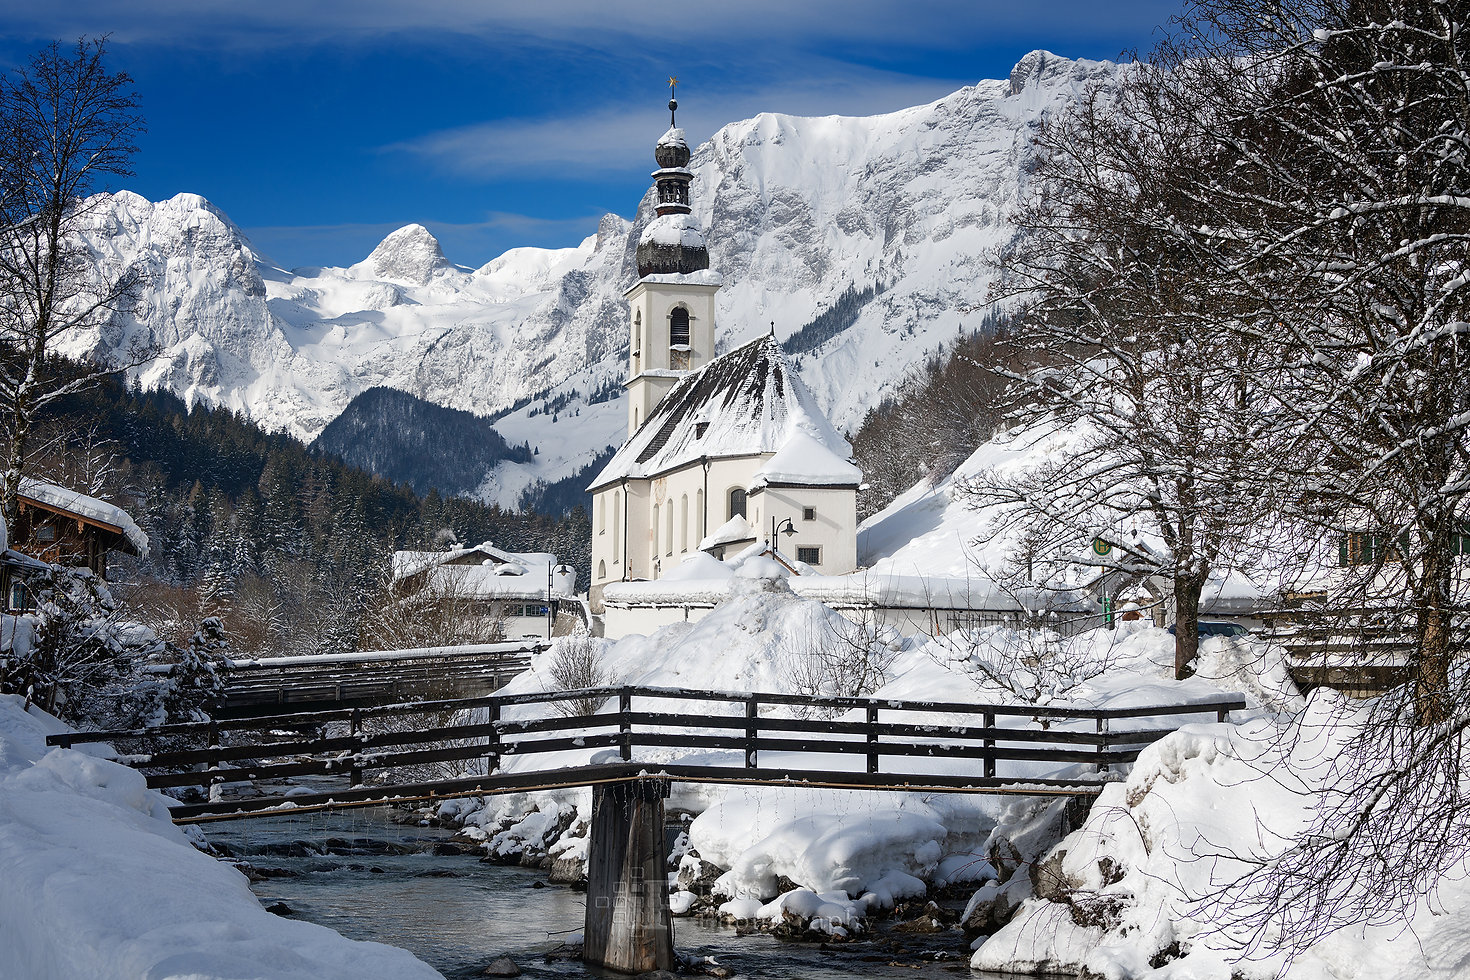 St. Sebastian church next to a mountain stream with a bridge and Reiter Alps mountains in the background, covered in snow under a blue sky, creating a winter wonderland landscape in Ramsau bei Berchtesgaden in Bavaria, Germany.